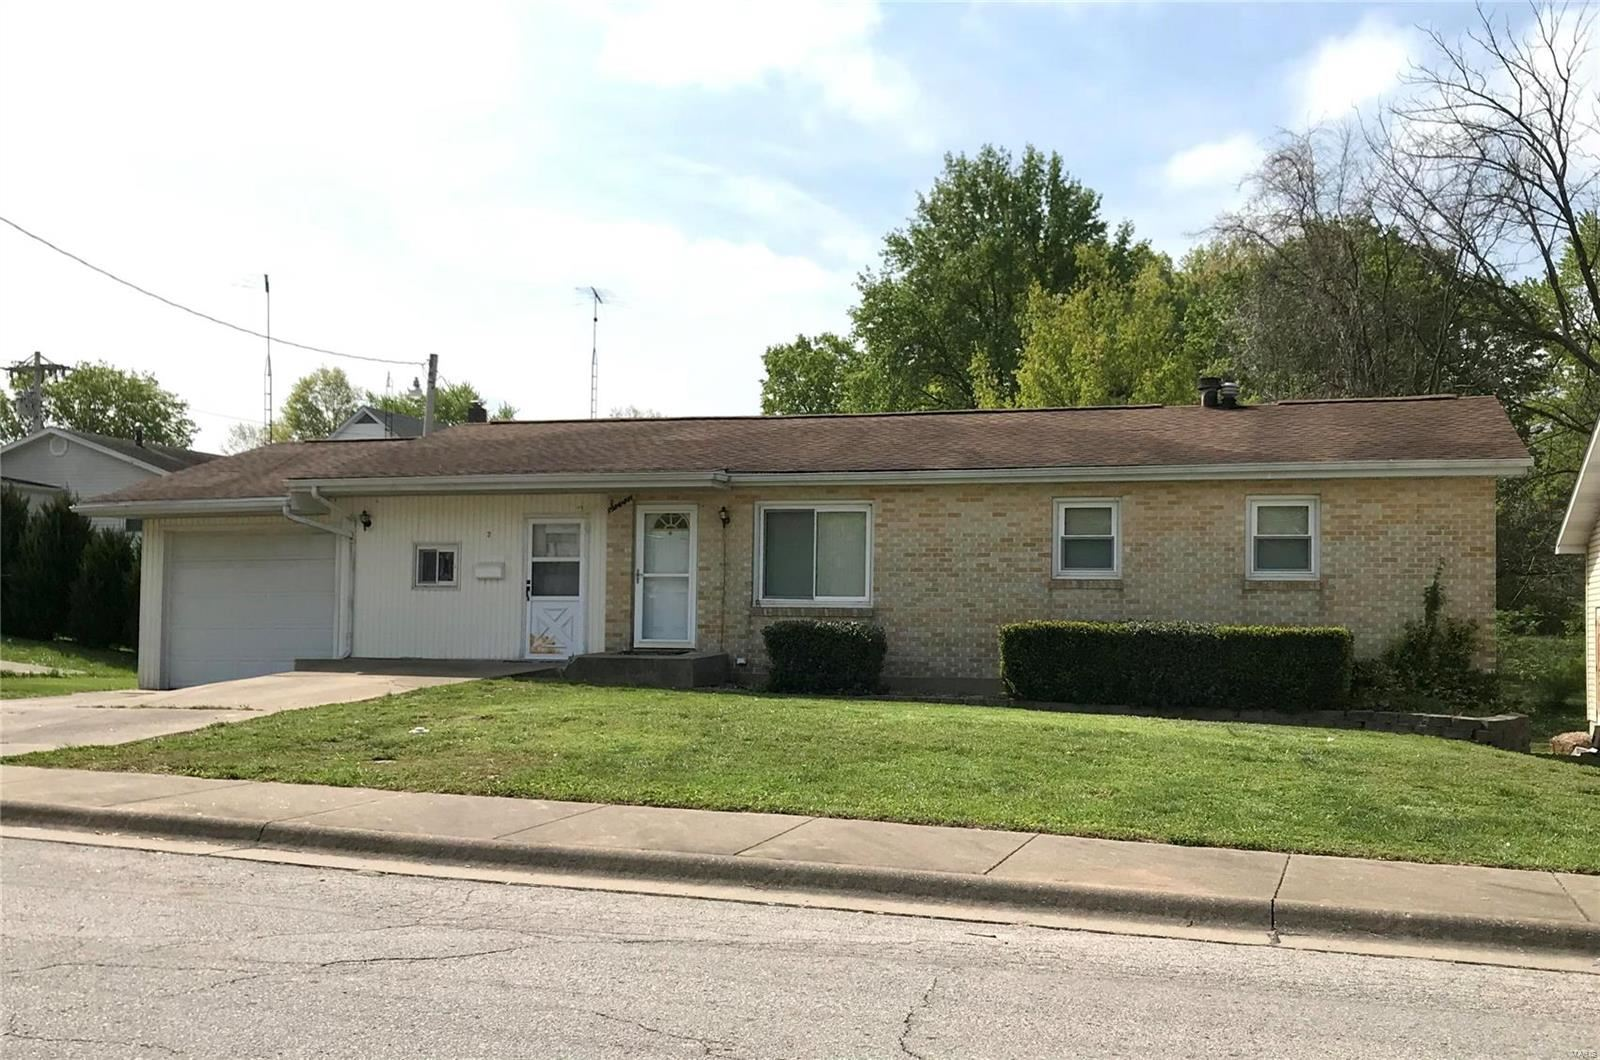 Photo of 7 East South Street, Perryville, MO 63775 (MLS # 21026415)